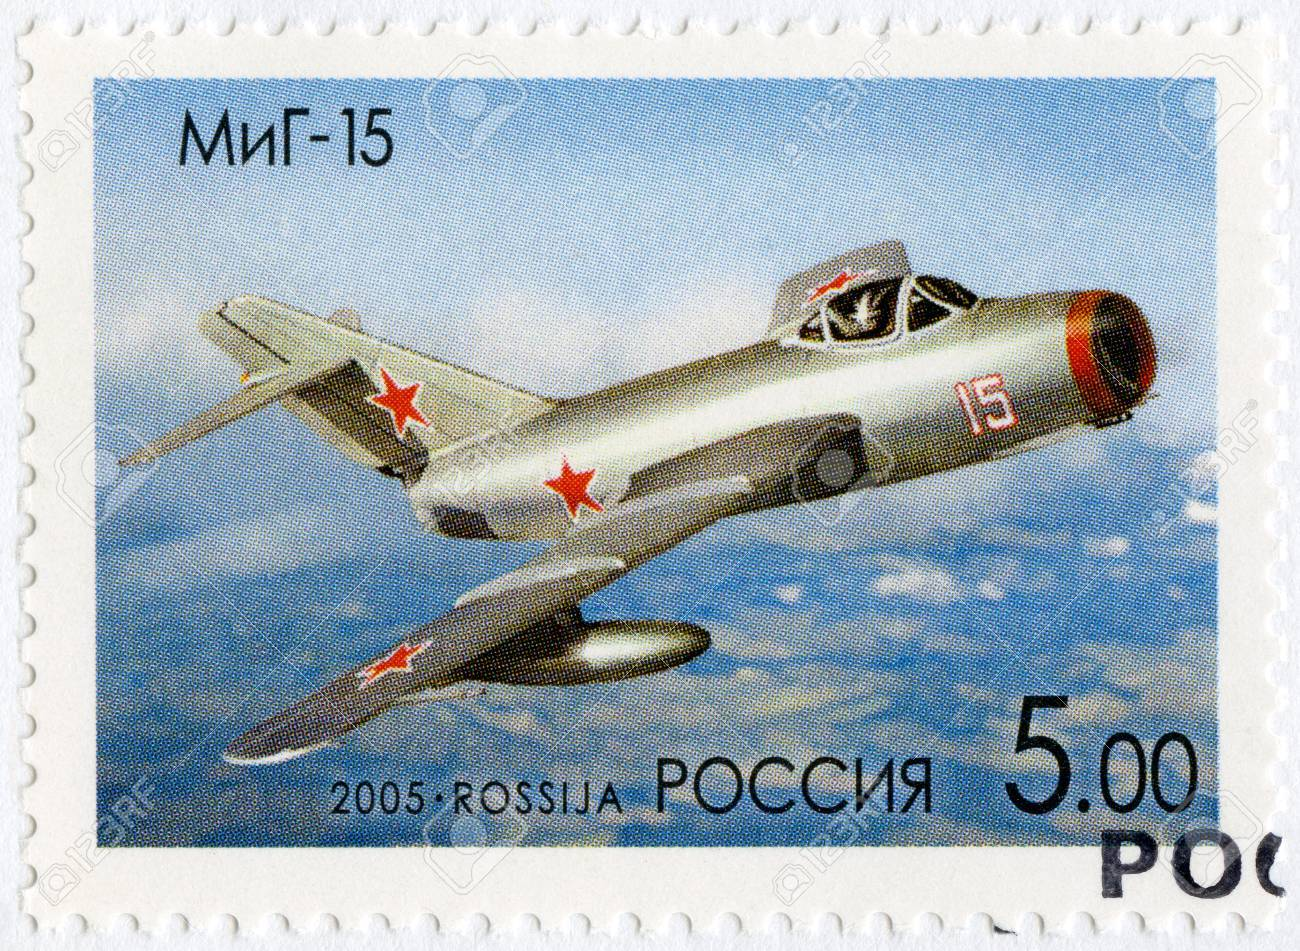 RUSSIA - CIRCA 2005: A stamp printed in Russia shows The Mikoyan-Gurevich